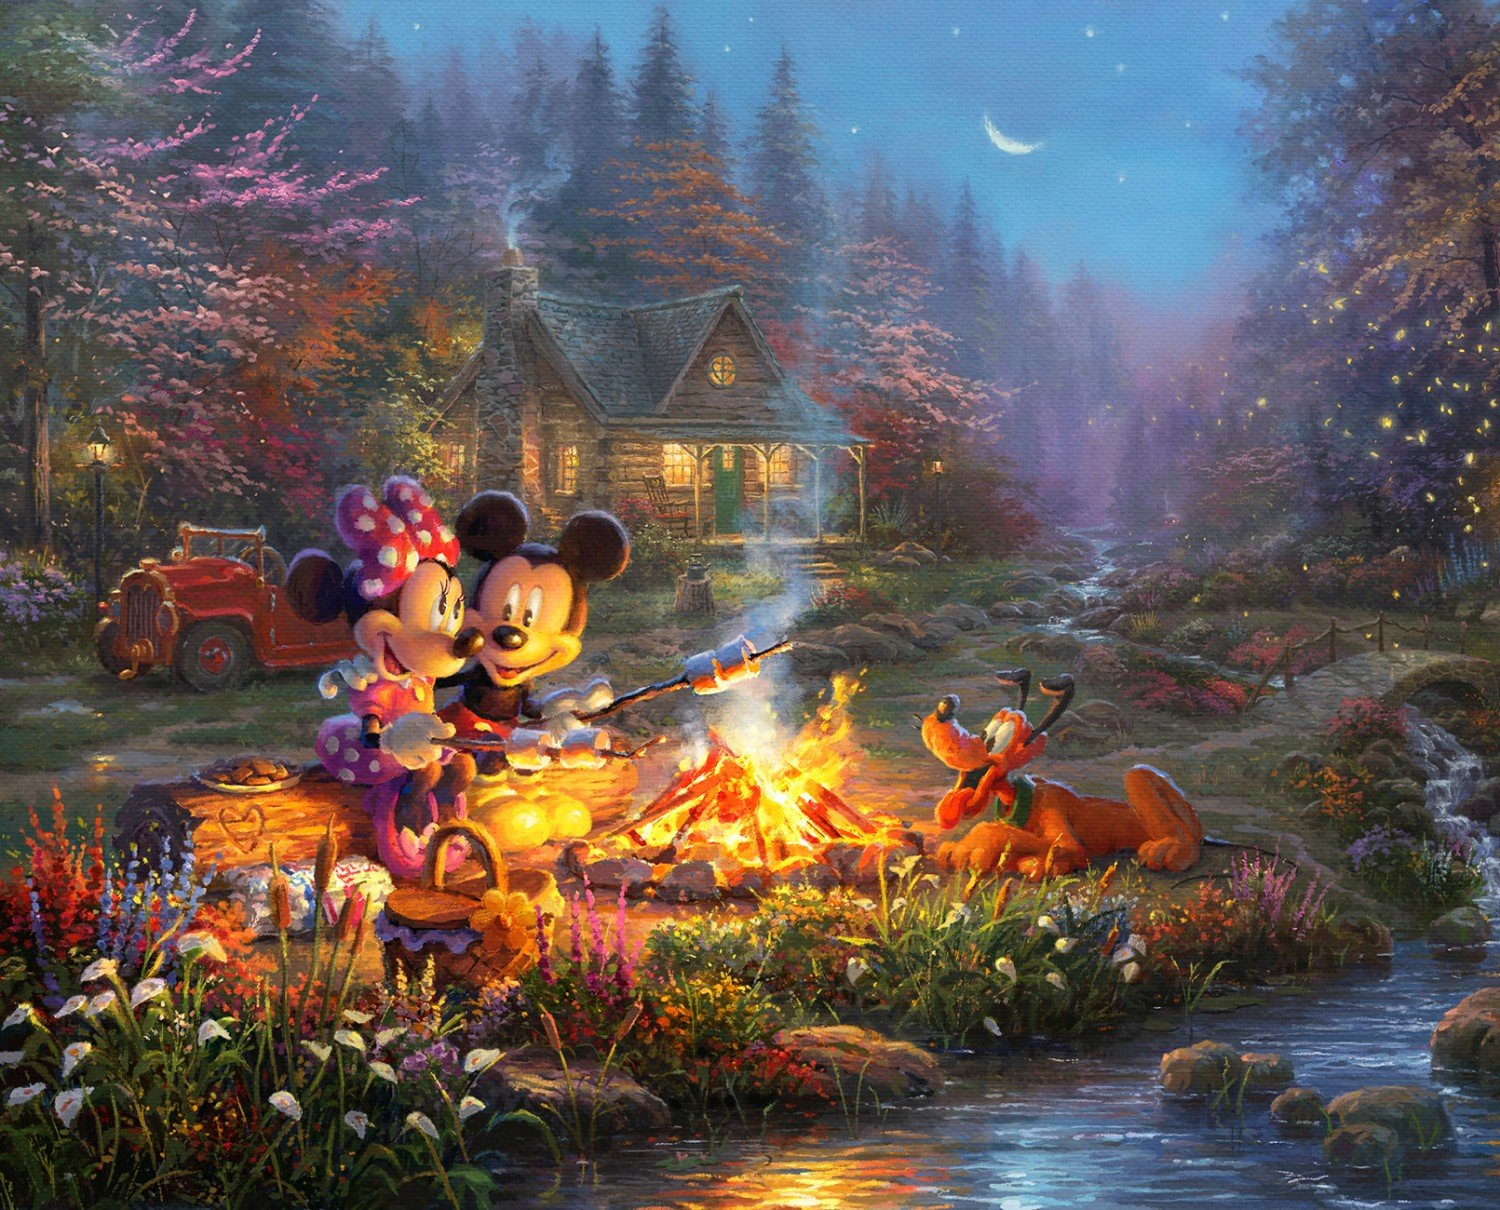 Disney Dreams Sweetheart Campfire Children's Fabric Panel 36 x 44 Inches